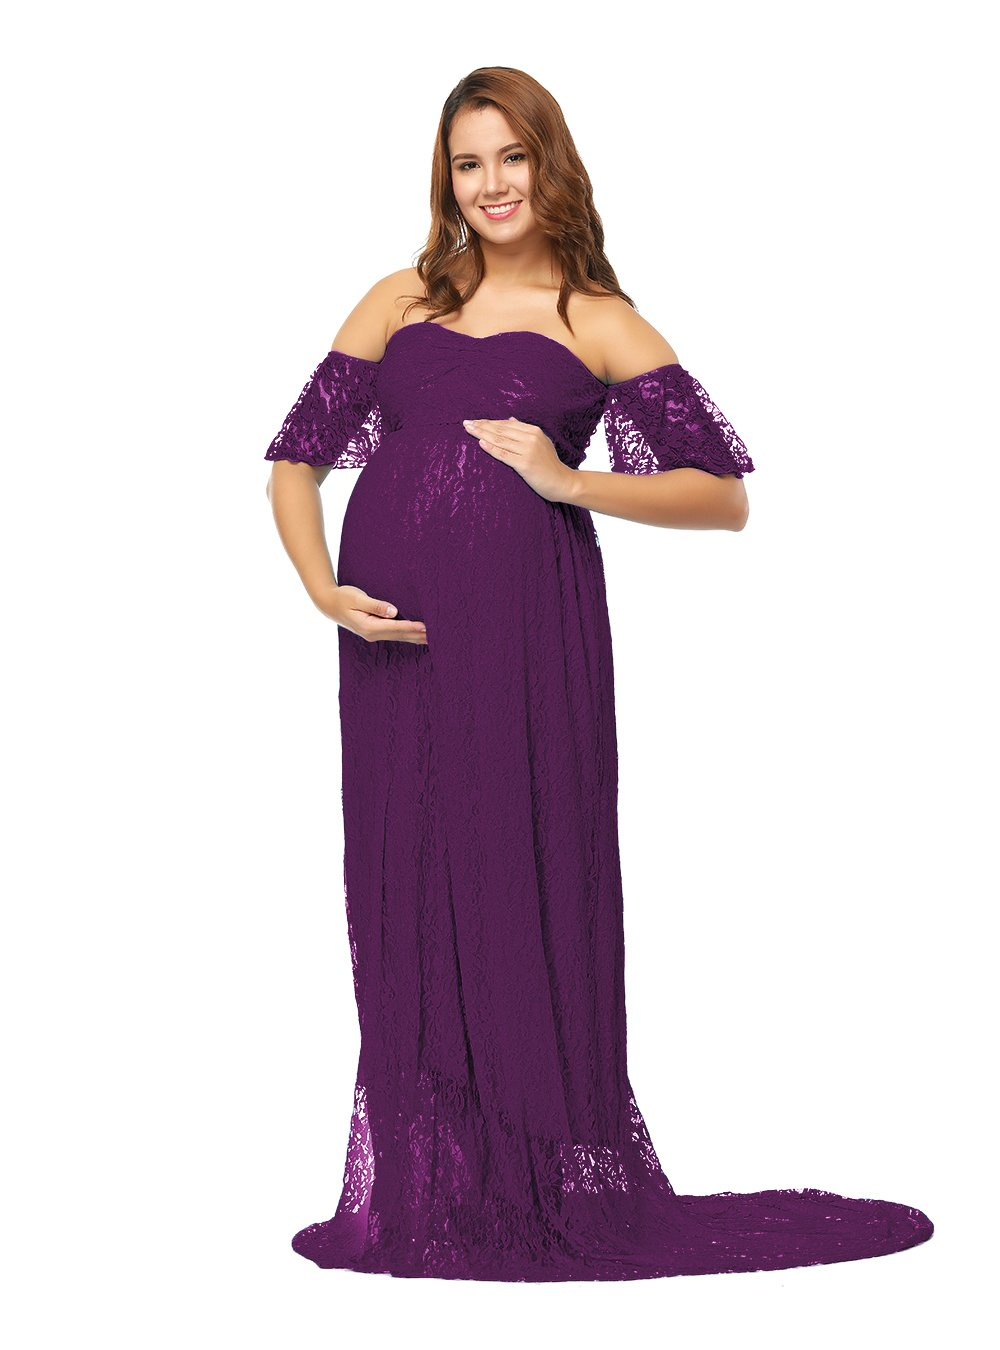 JustVH Women's Off Shoulder Ruffle Sleeve Lace Maternity Gown Maxi Photography Dress